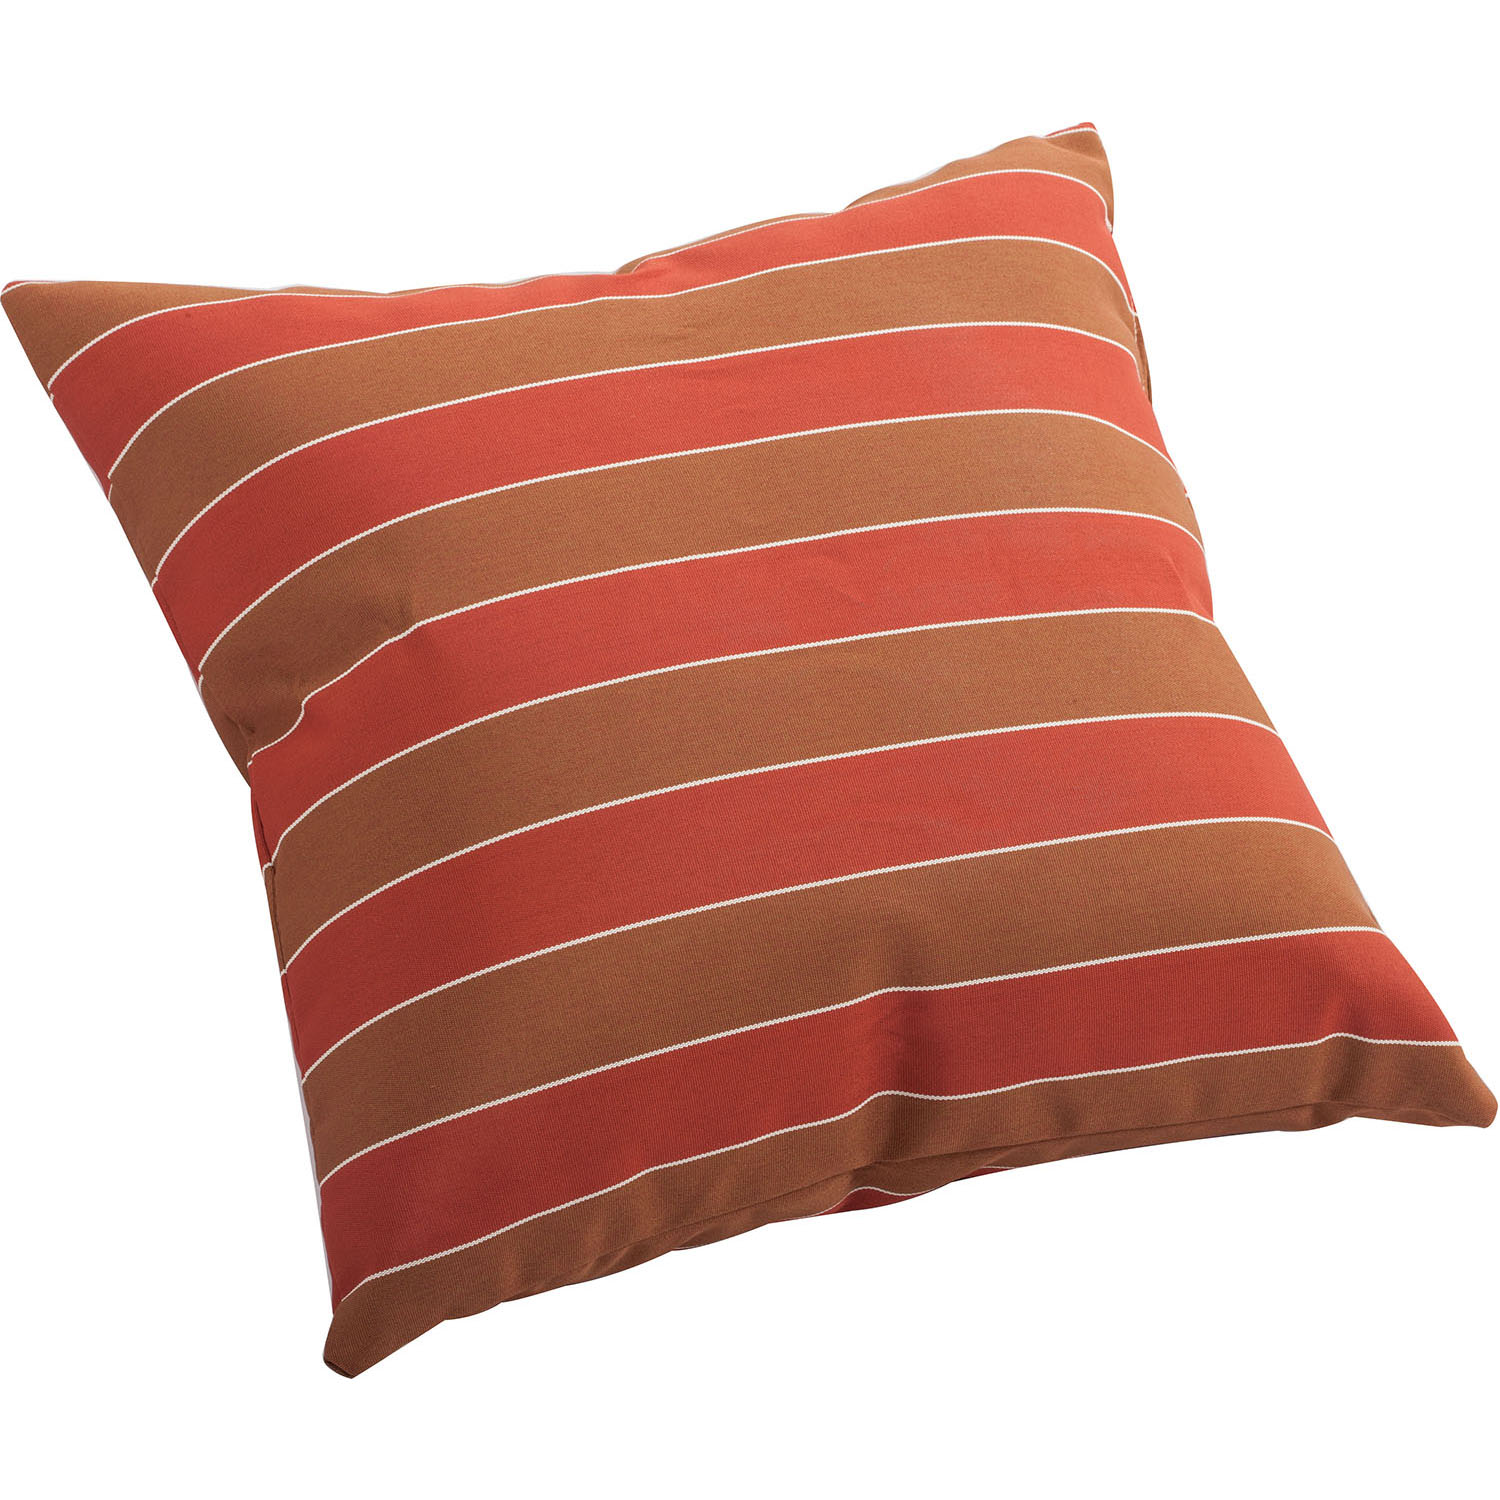 Outdoor Joey Pillow Brown/Clay Wide Stripe Pattern: Size Options